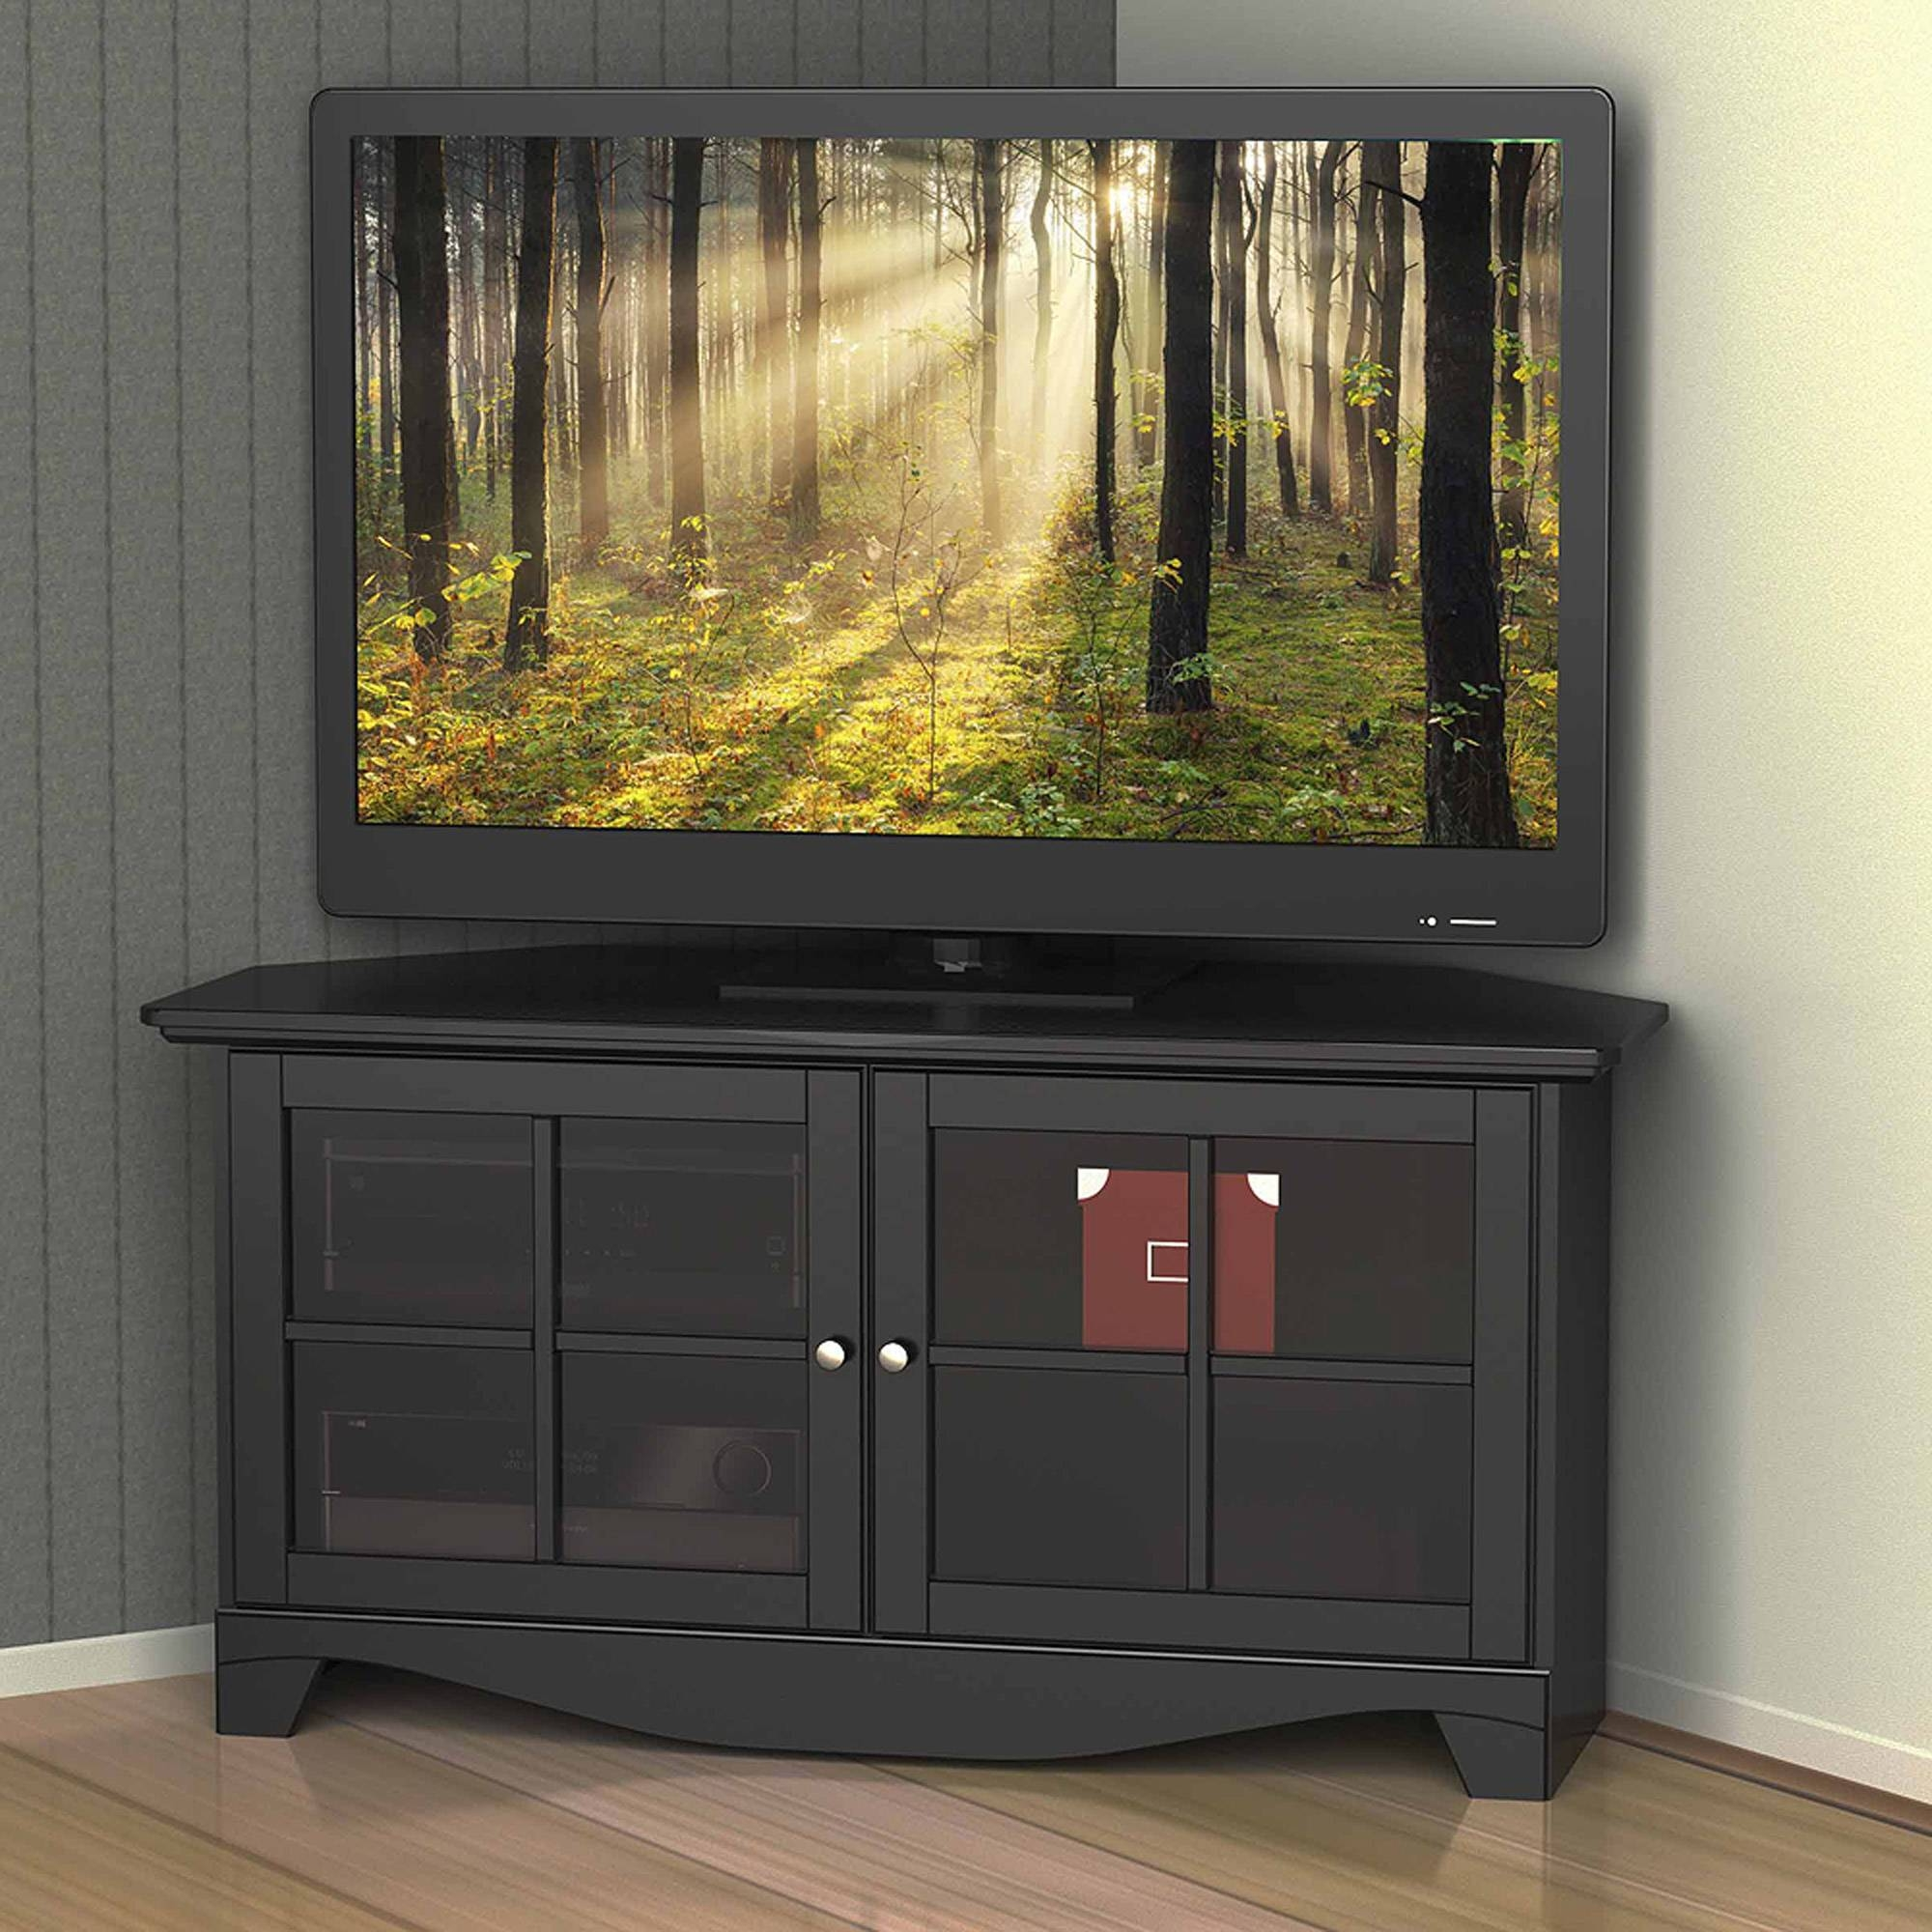 tv cabinet with doors best 15 of black corner tv cabinets with glass doors 27345